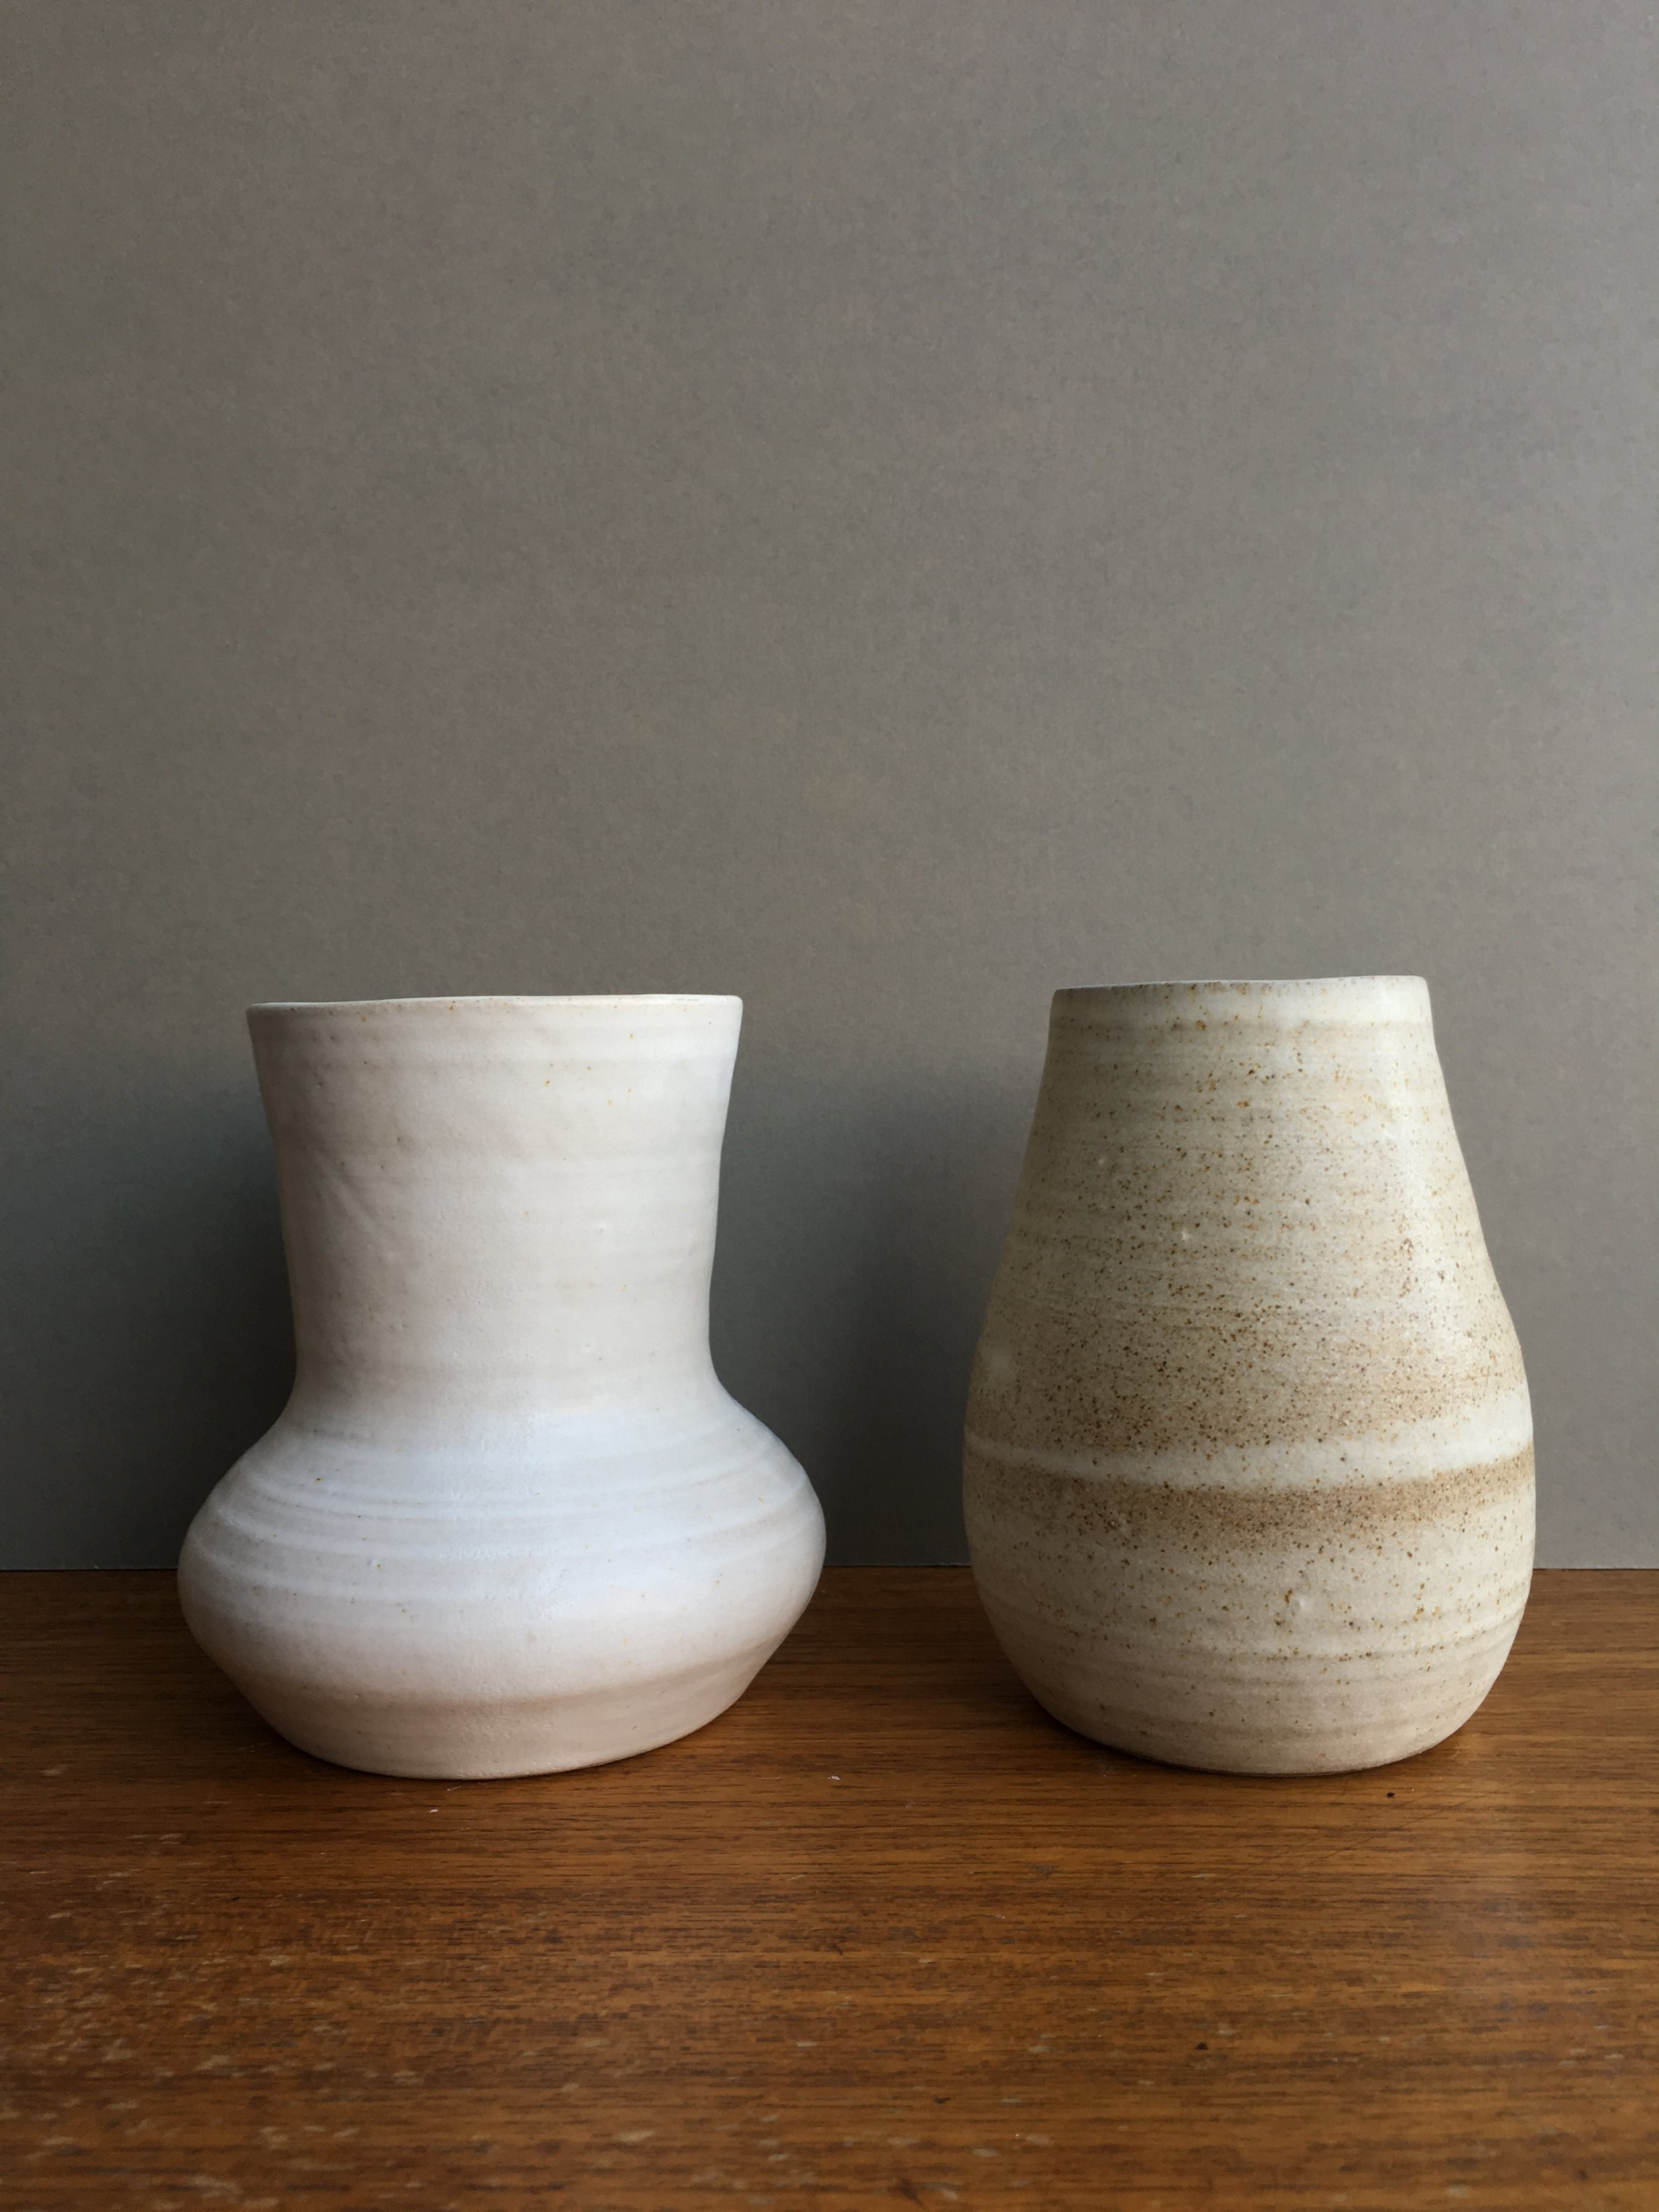 Ceramics by carla murdoch - available in storeCarla is a Sheffield based ceramicist@carla_murdoch_ceramics